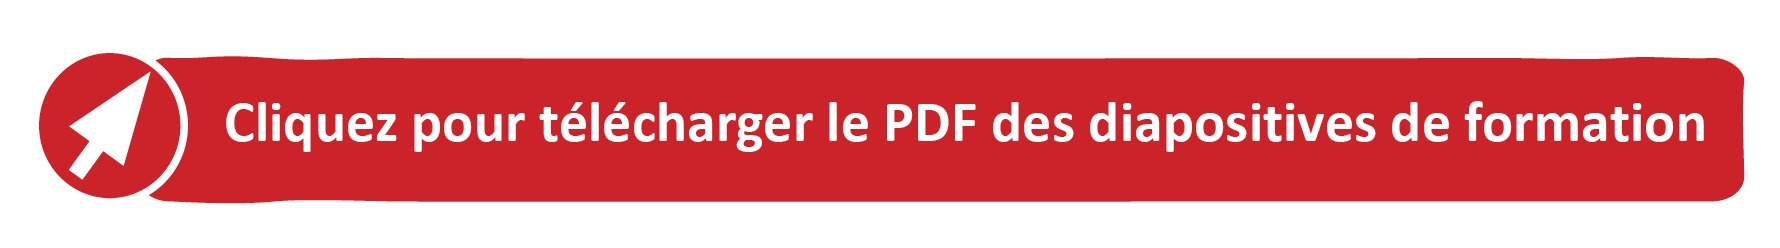 click here to download this resource in French